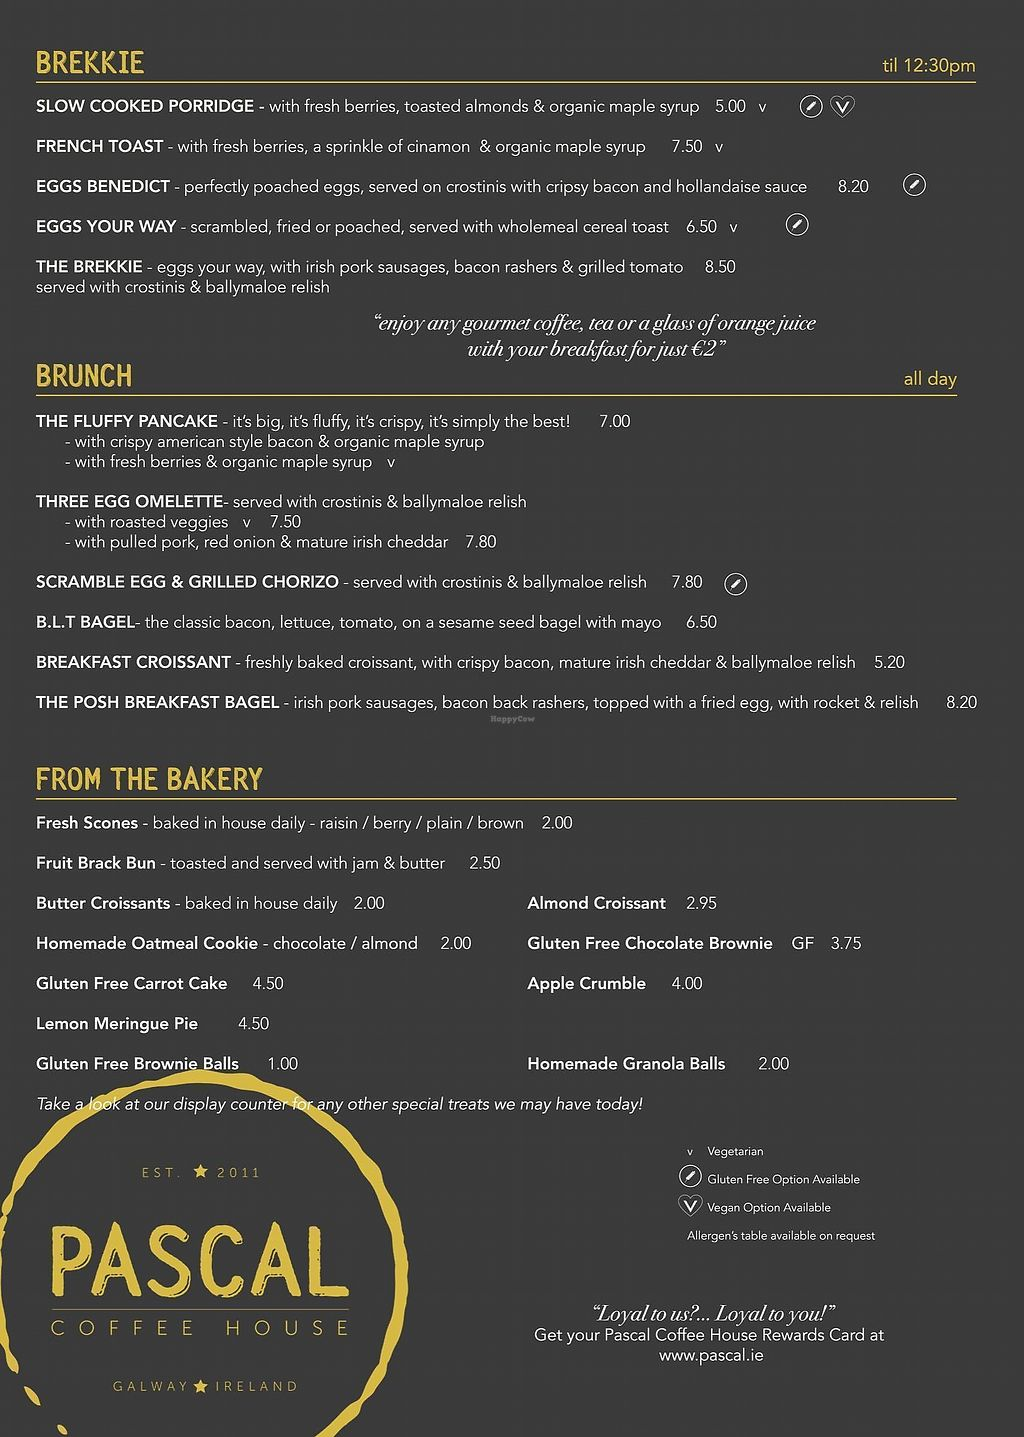 """Photo of Pascal Coffee House - Edward Square  by <a href=""""/members/profile/AvrilTkd"""">AvrilTkd</a> <br/>Menu  <br/> August 18, 2017  - <a href='/contact/abuse/image/98900/294086'>Report</a>"""